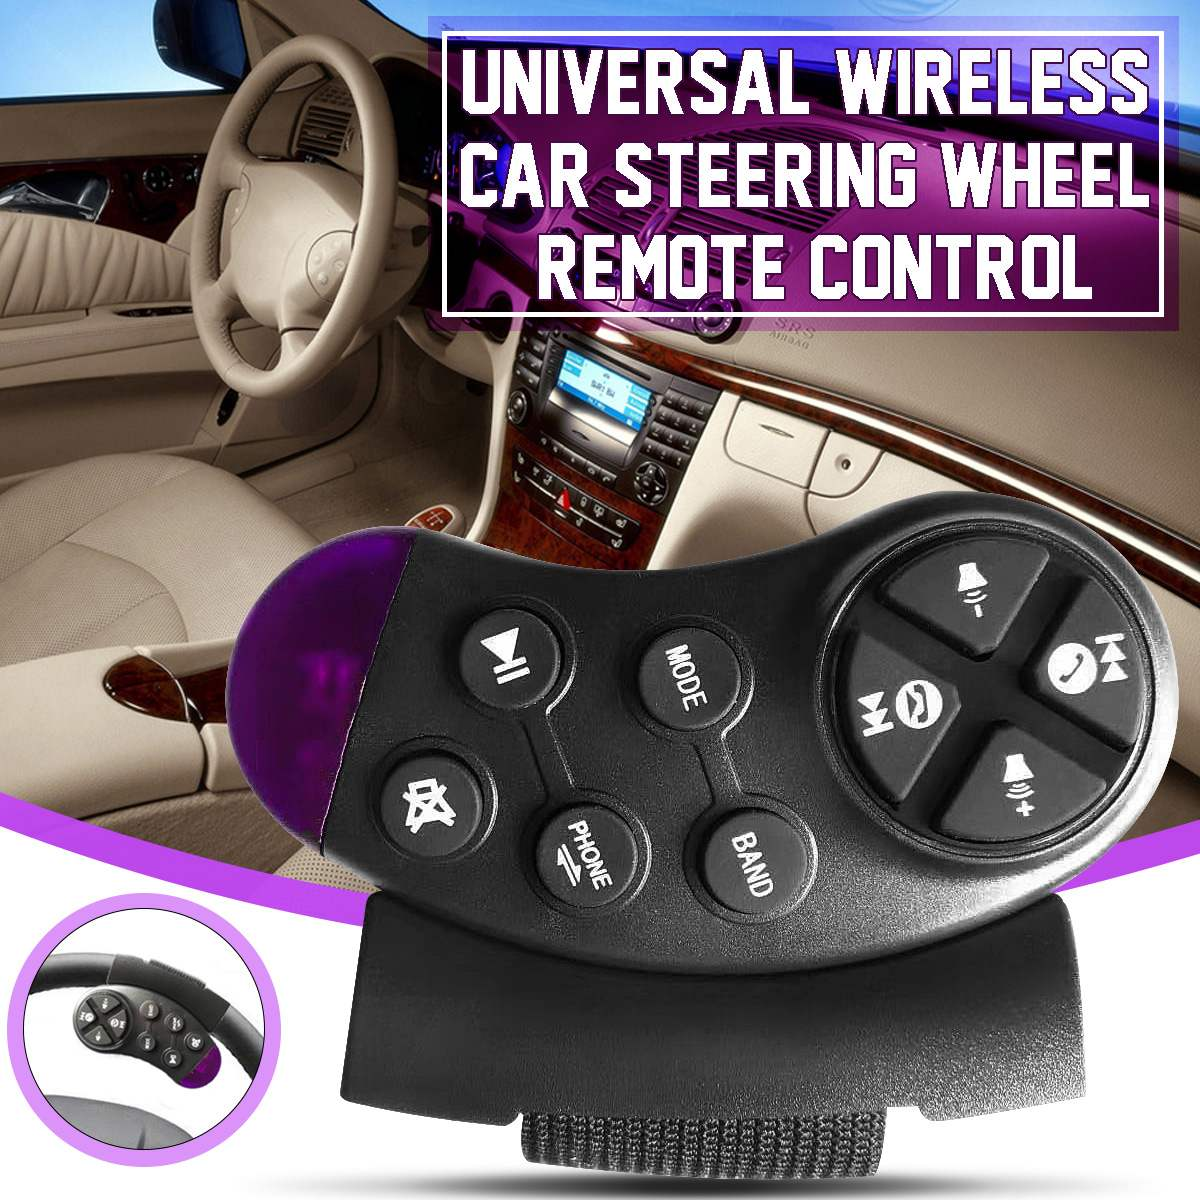 Universal Car Steering Wheel Remote Control Button Key for Car Navigation DVD Multimedia Music Player Android Car Radio Hot Sale